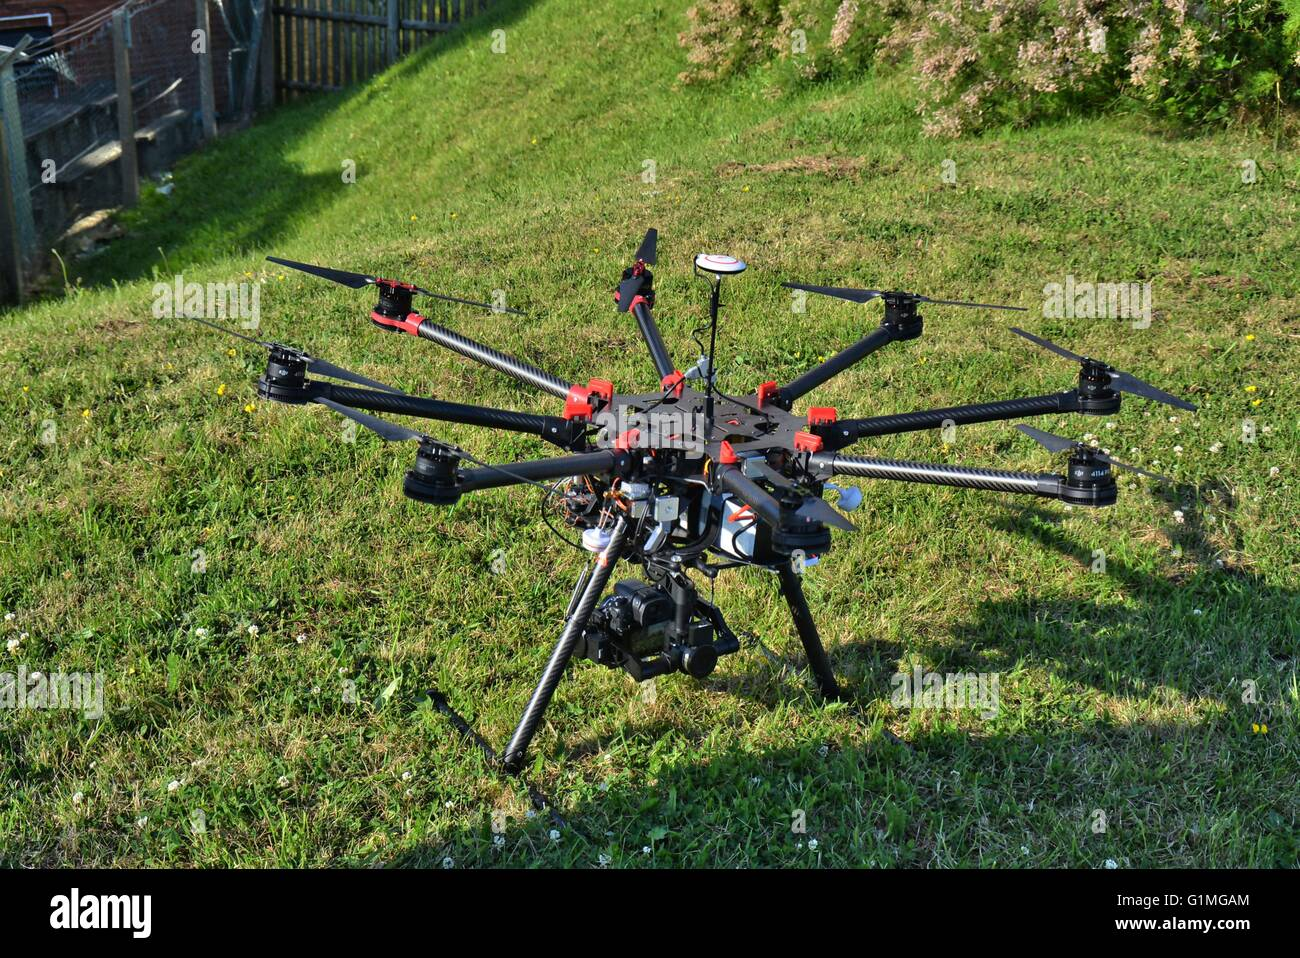 Drone photo of 8 rotor drone with Lumix professional camera attached on Gimbel, before take of for aerial video - Stock Image